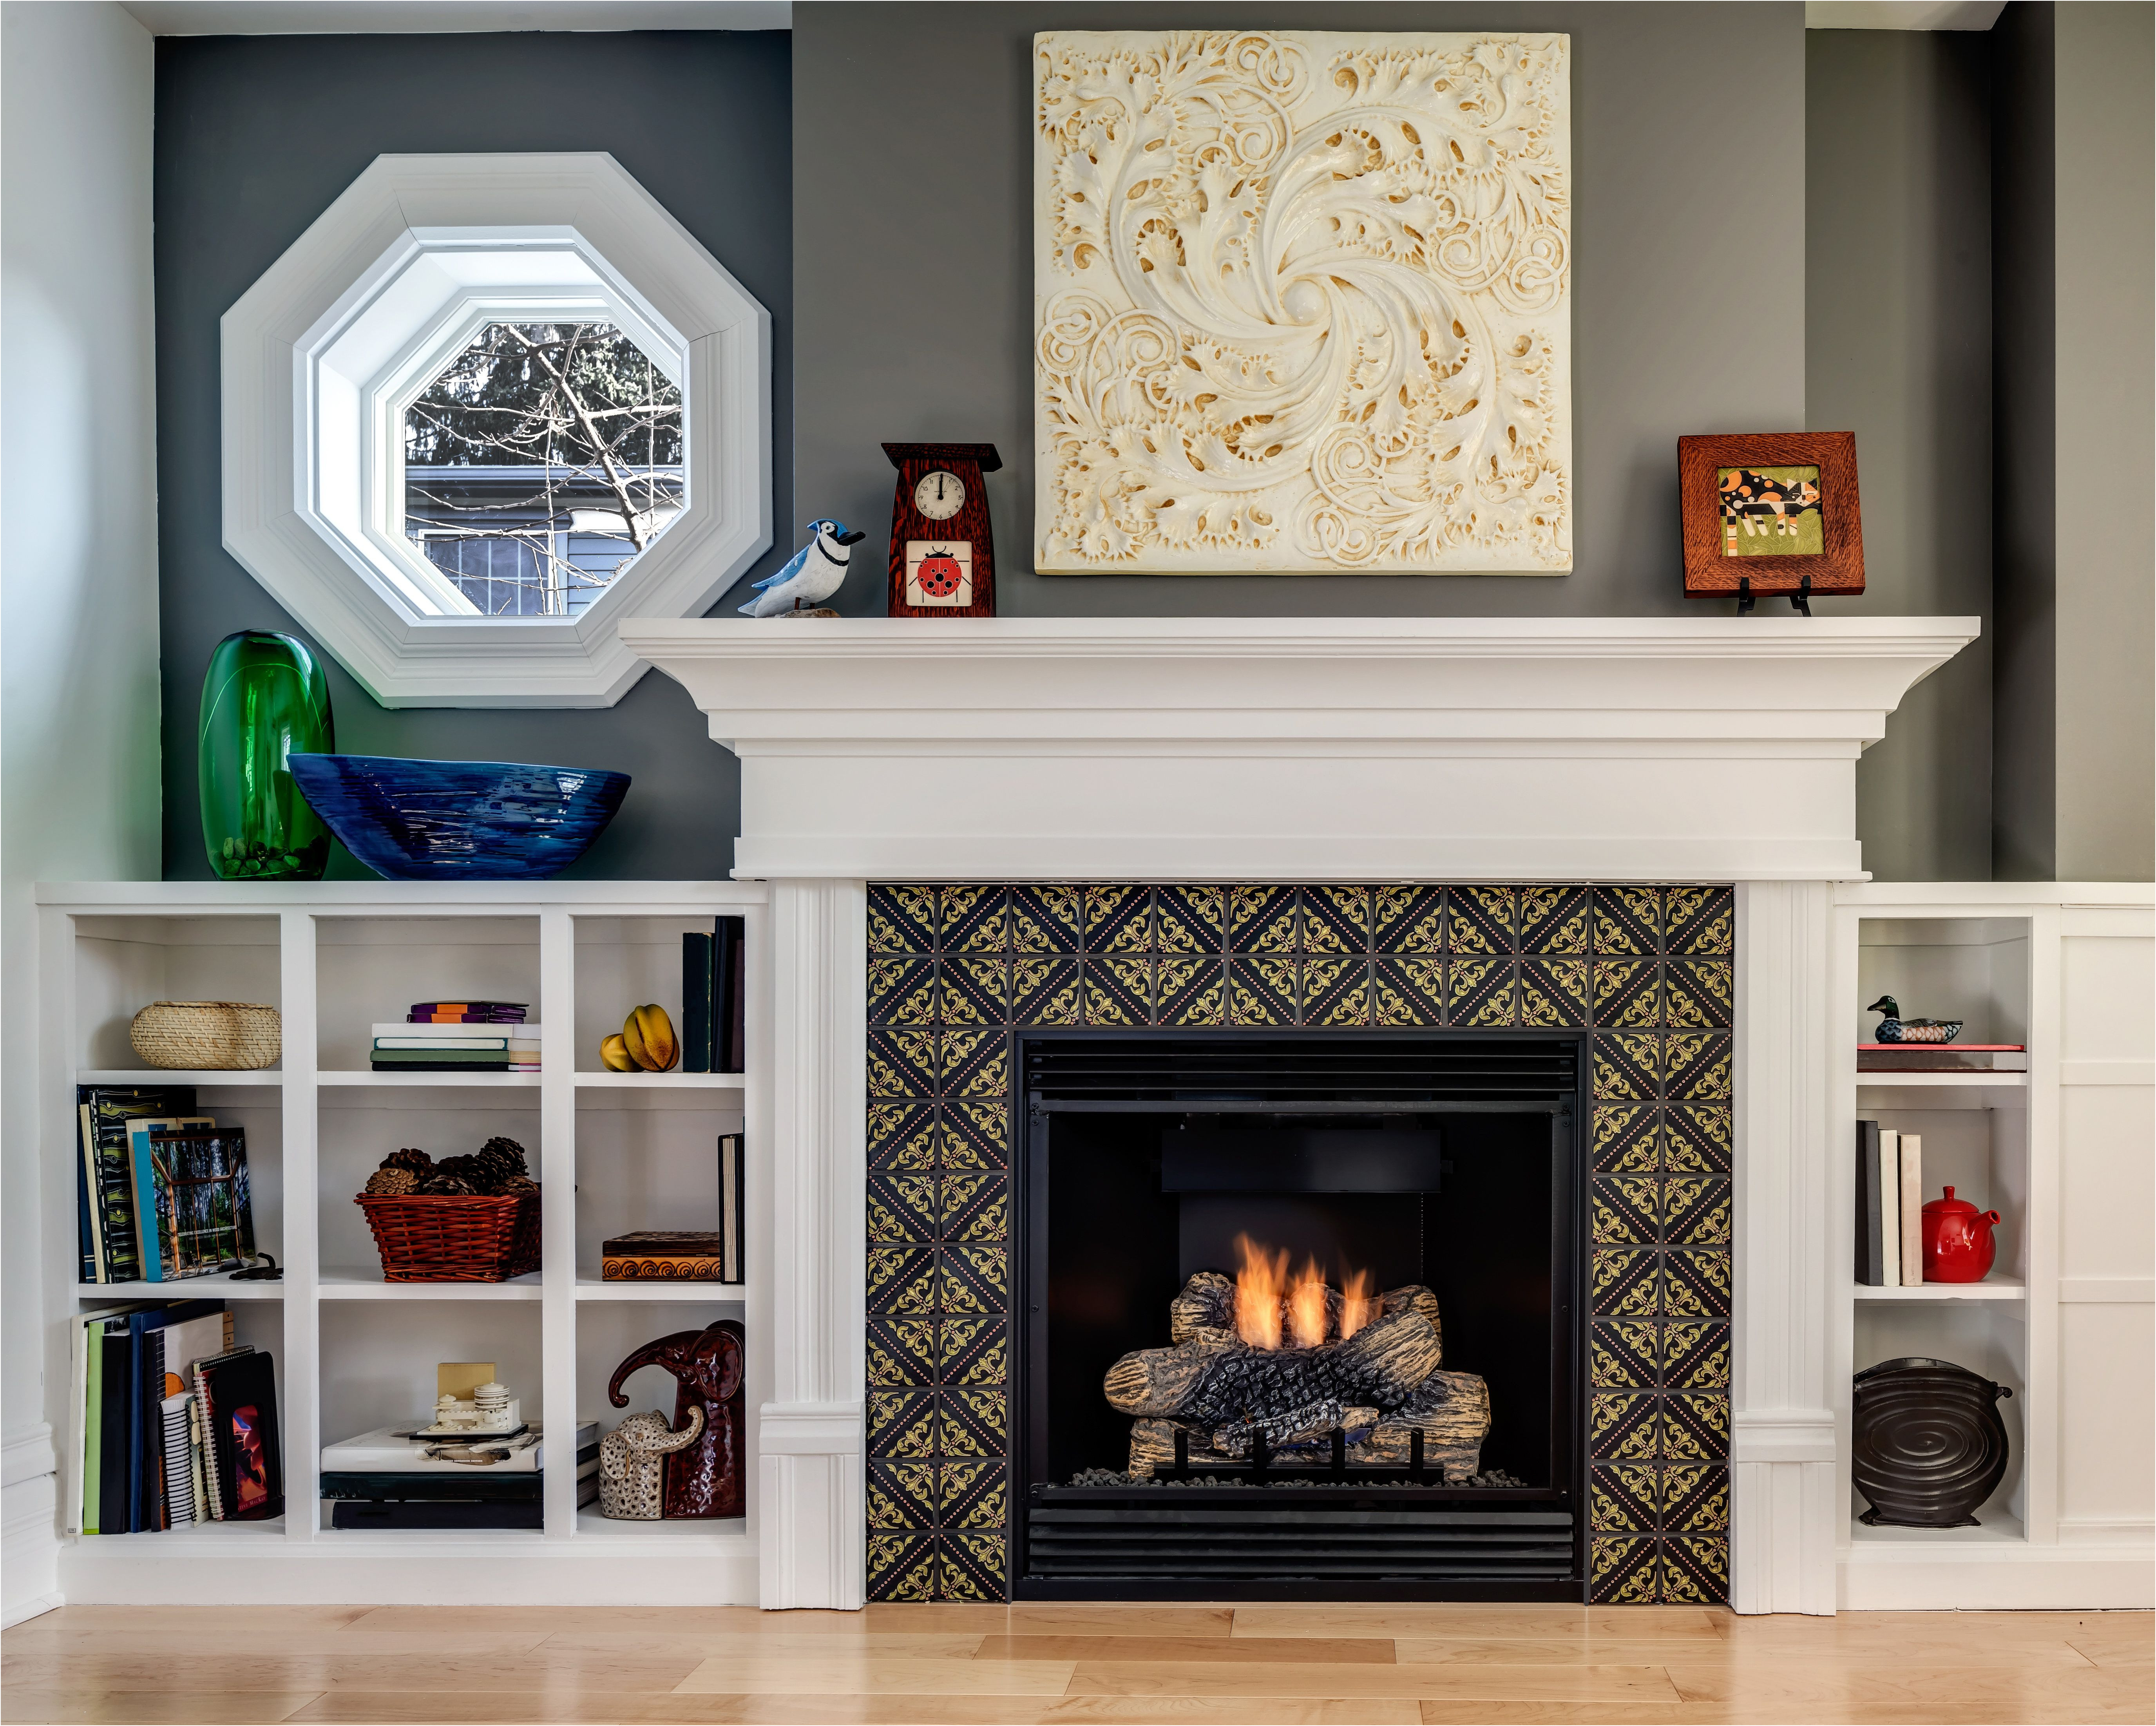 Fireplace Tiles Design Luxury This Small but Stylish Fireplace Features Our Lisbon Tile